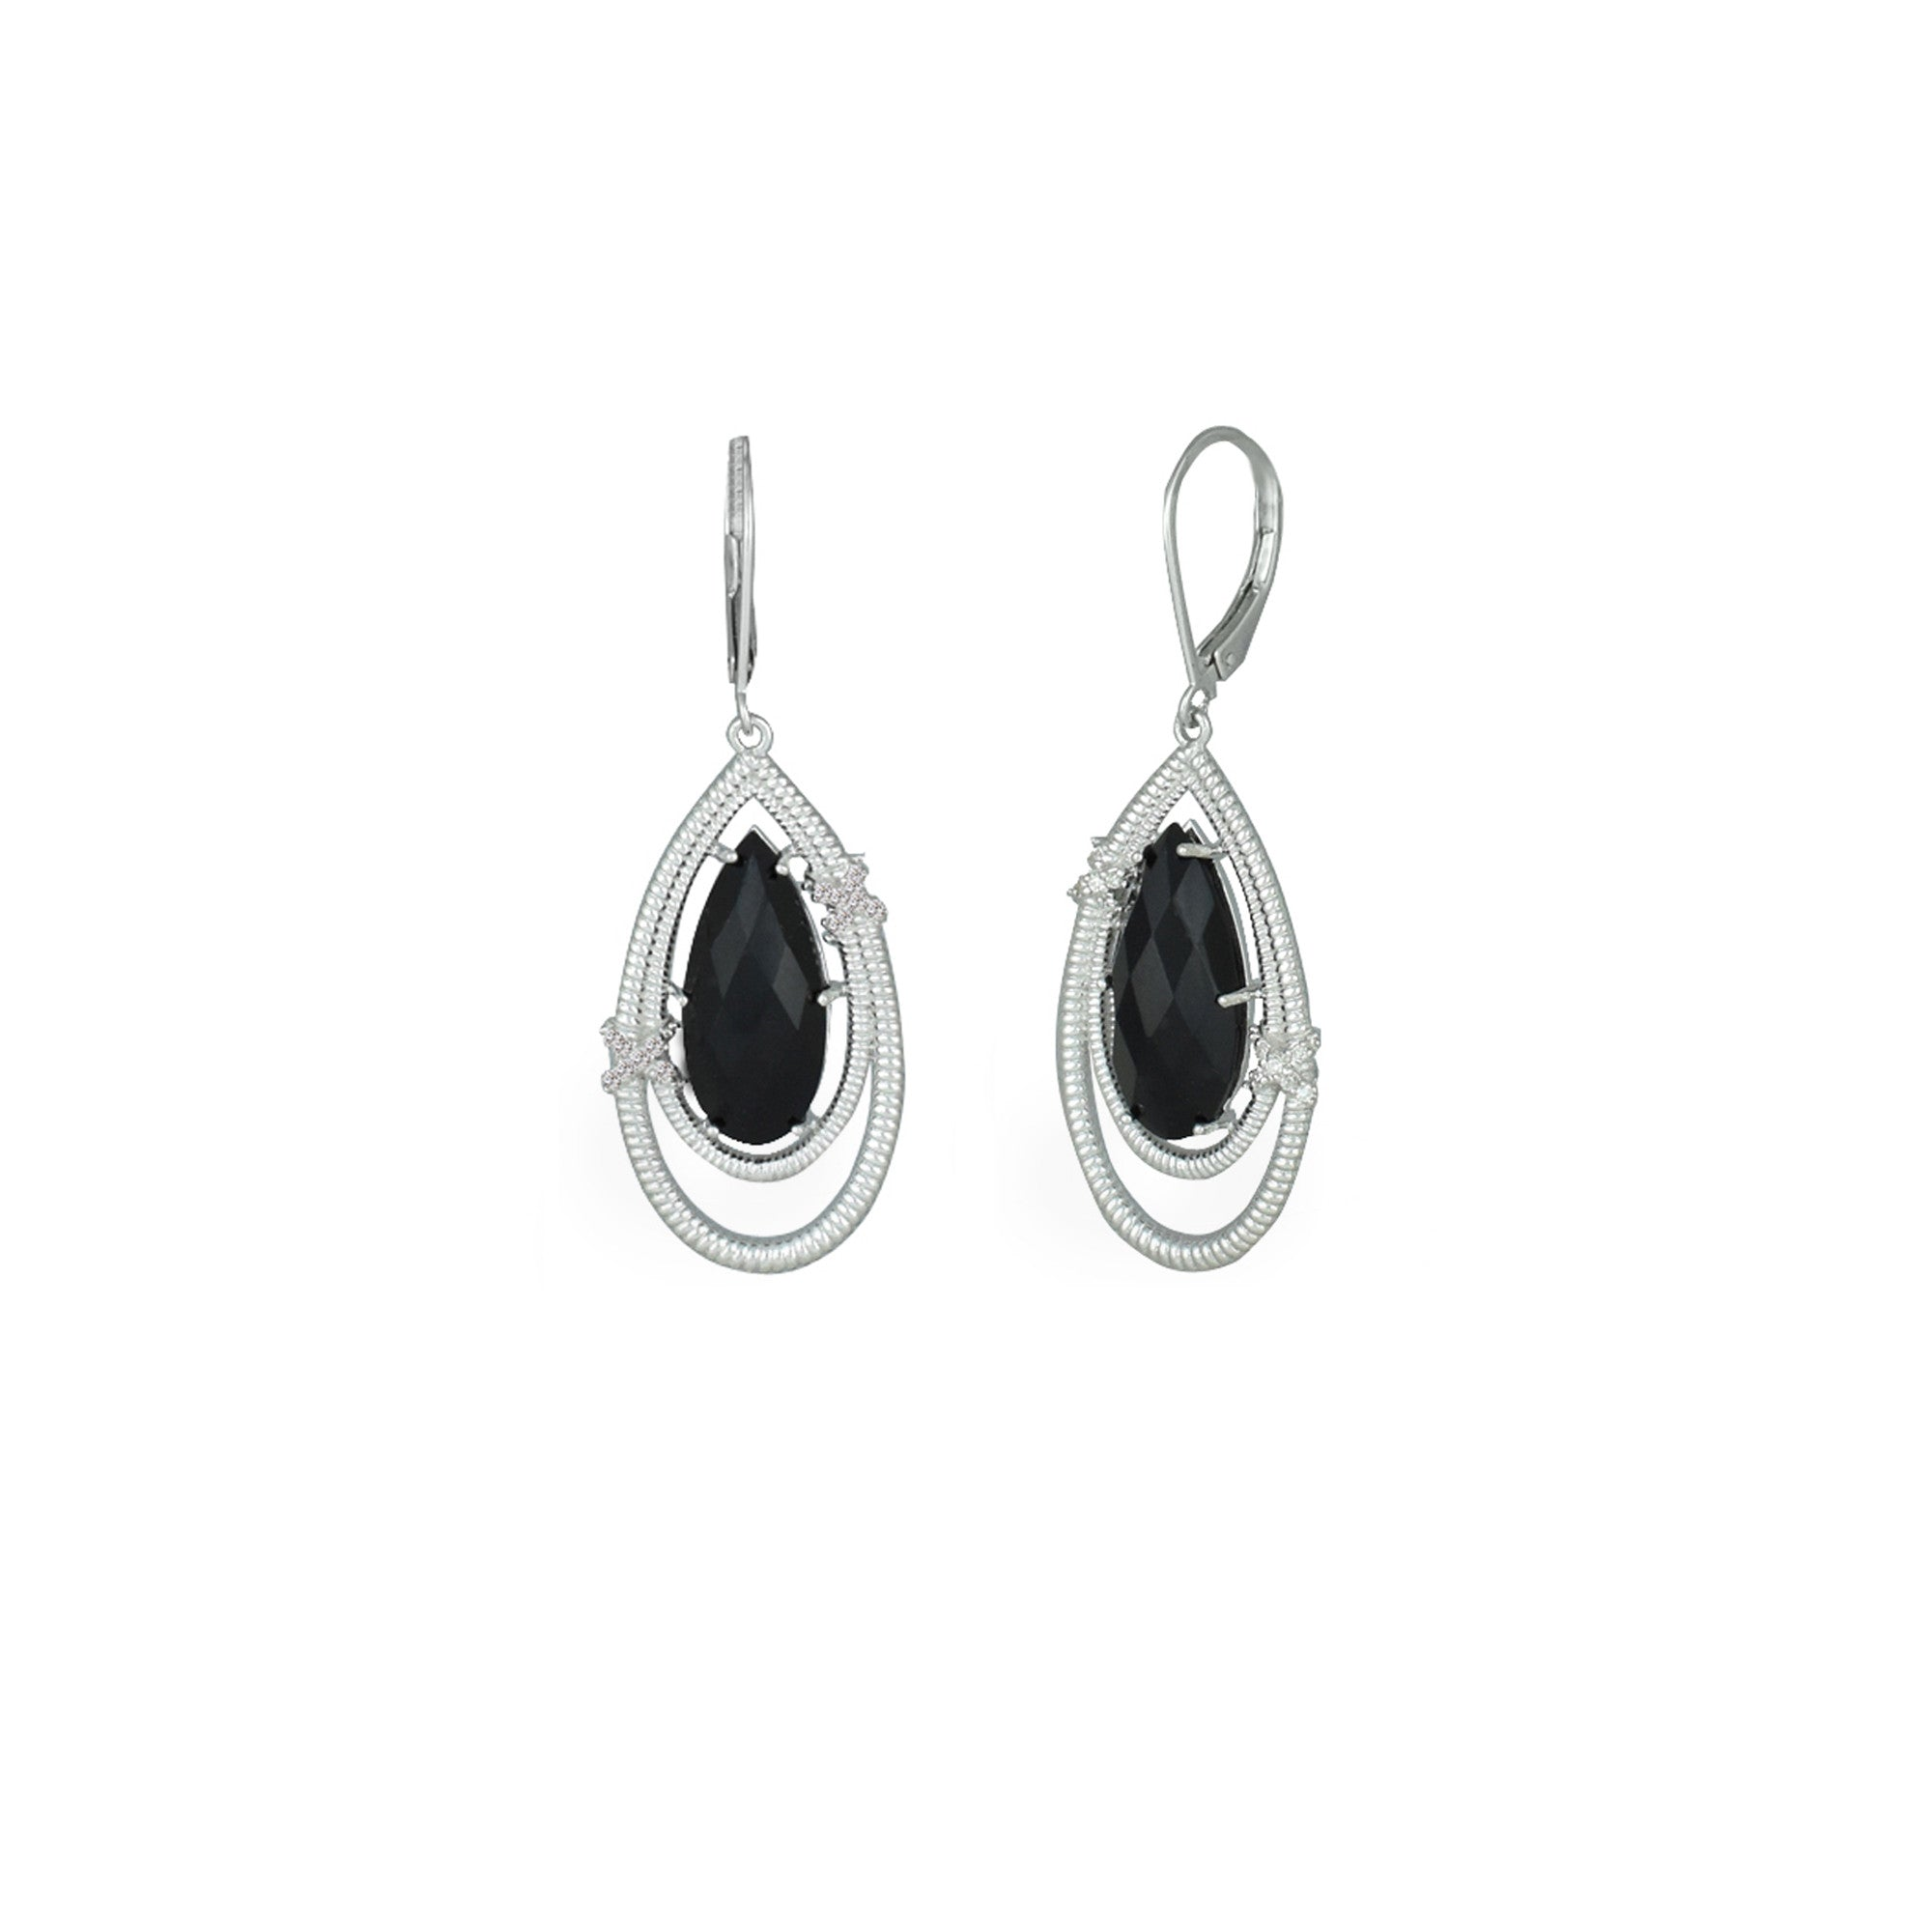 earrings qlt hei sterling prod silver diamond p wid accent